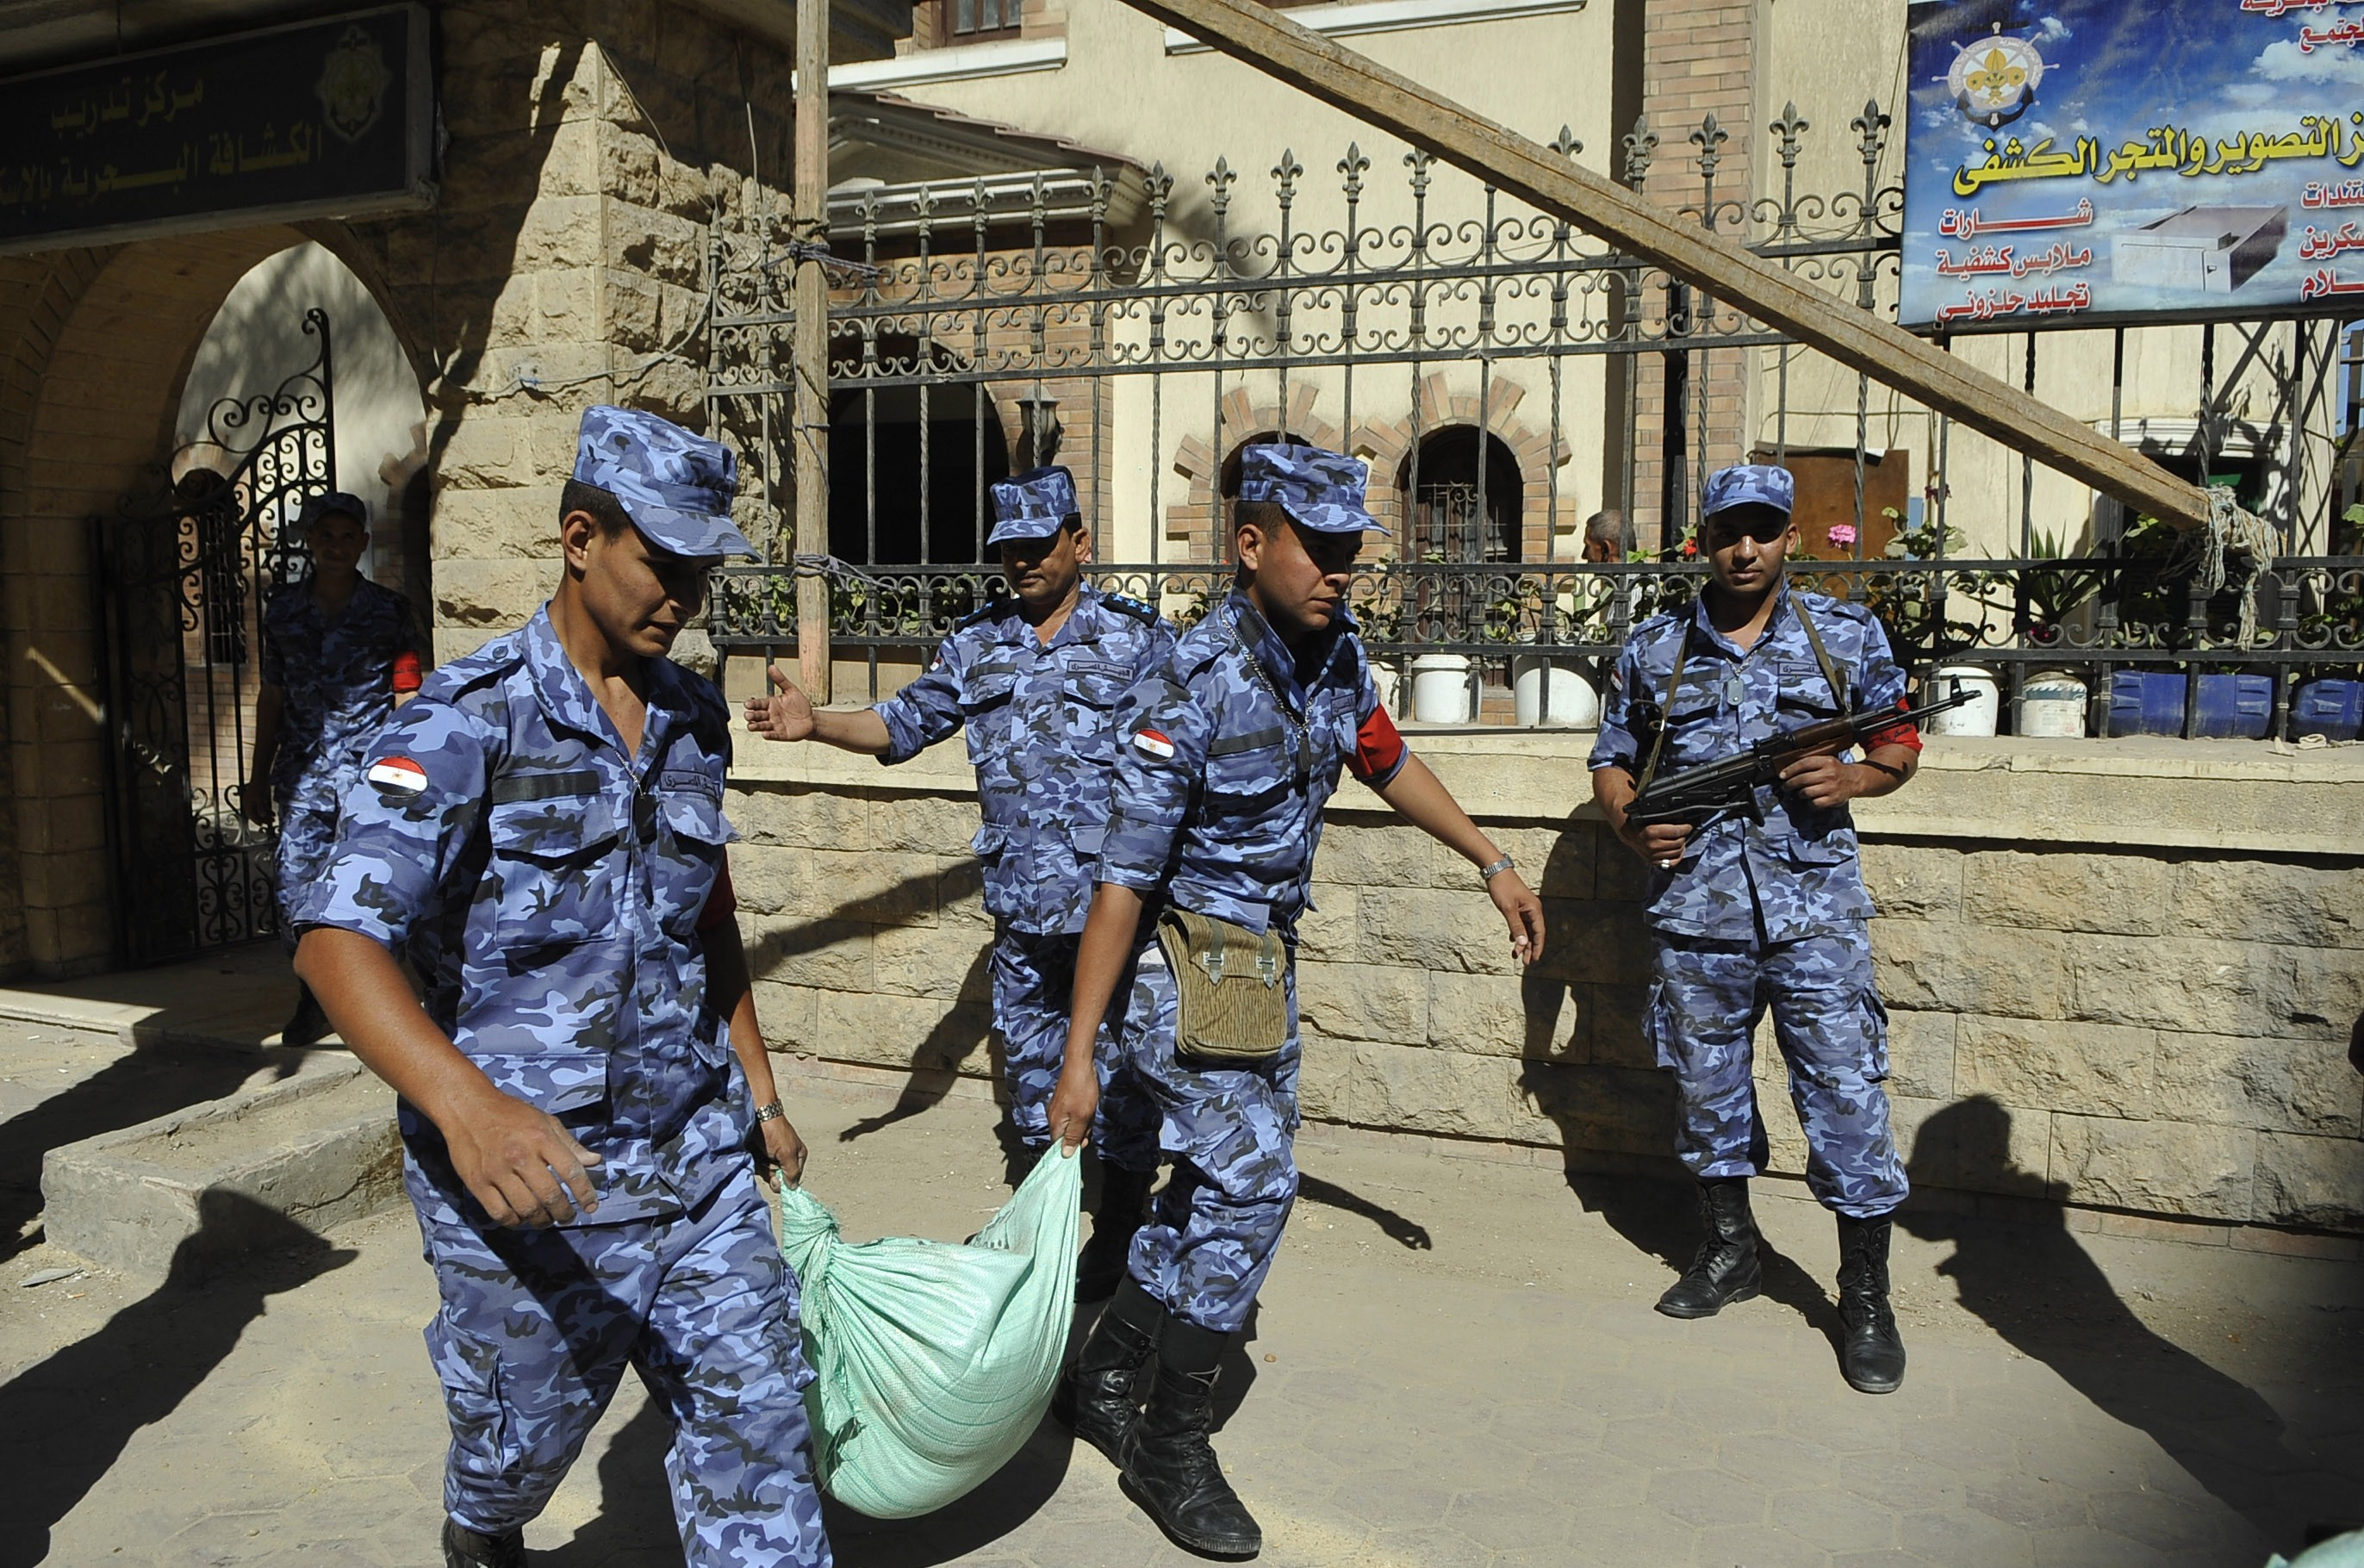 Egyptian troops carry sand bags for protection outside a polling station in the Mediterranean porty city of Alexandria on May 25, 2014 as Egyptians get ready to go to the polls the coming two days to elect a new president. Presidential frontrunner Abdel Fattah al-Sisi, who stepped down as army chief to run for office, urged Egyptians on may 23 to vote in large numbers in next week's election.  (AFP PHOTO / STR)